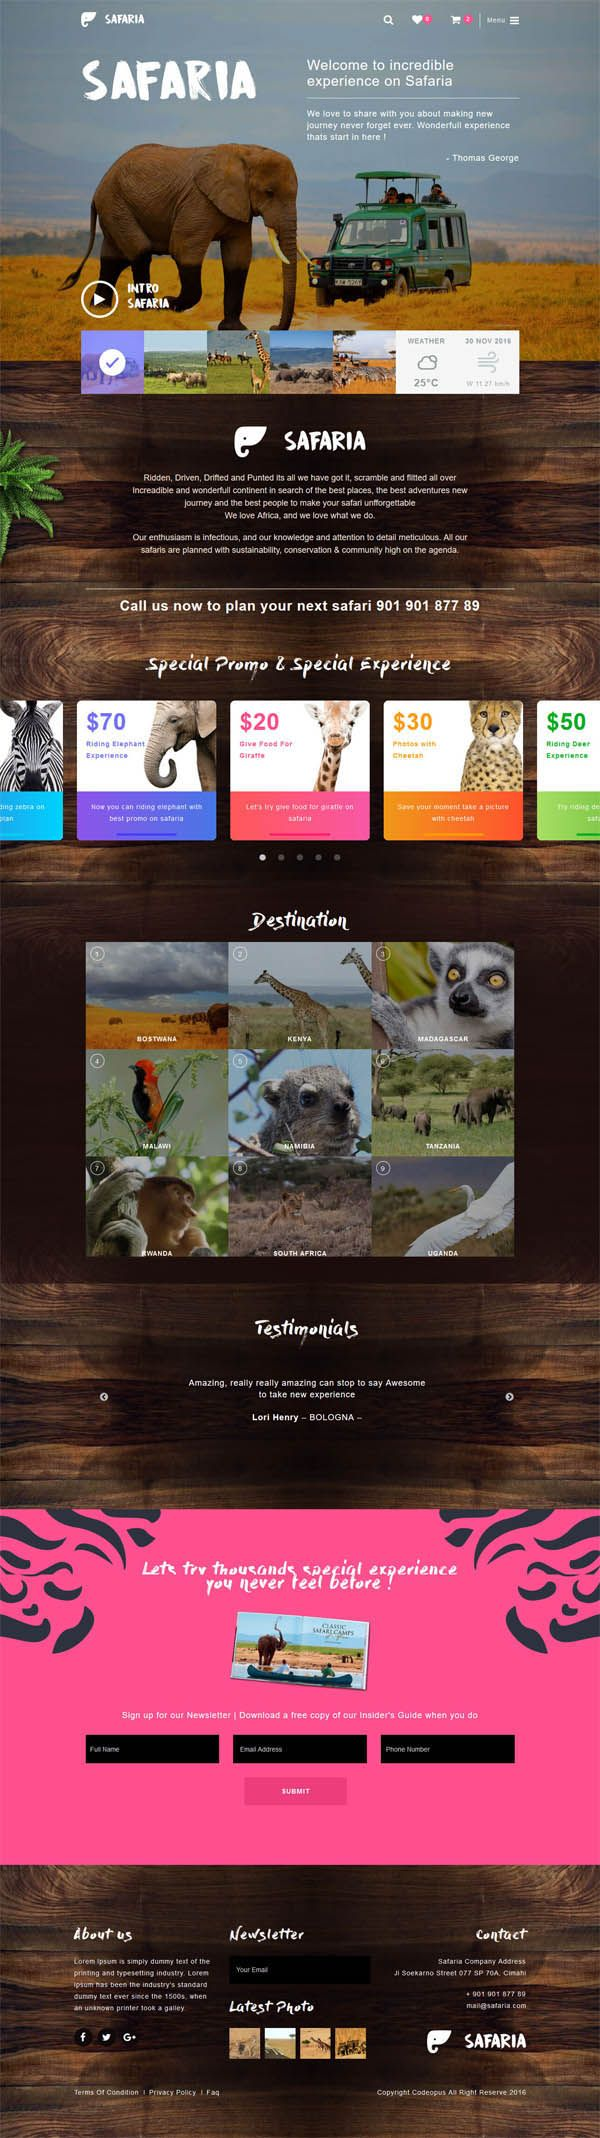 Safaria - Safari & Zoo WordPress Theme #bestfor2017 #wordpressthemes #css3 #framework #html5 #responsivedesign